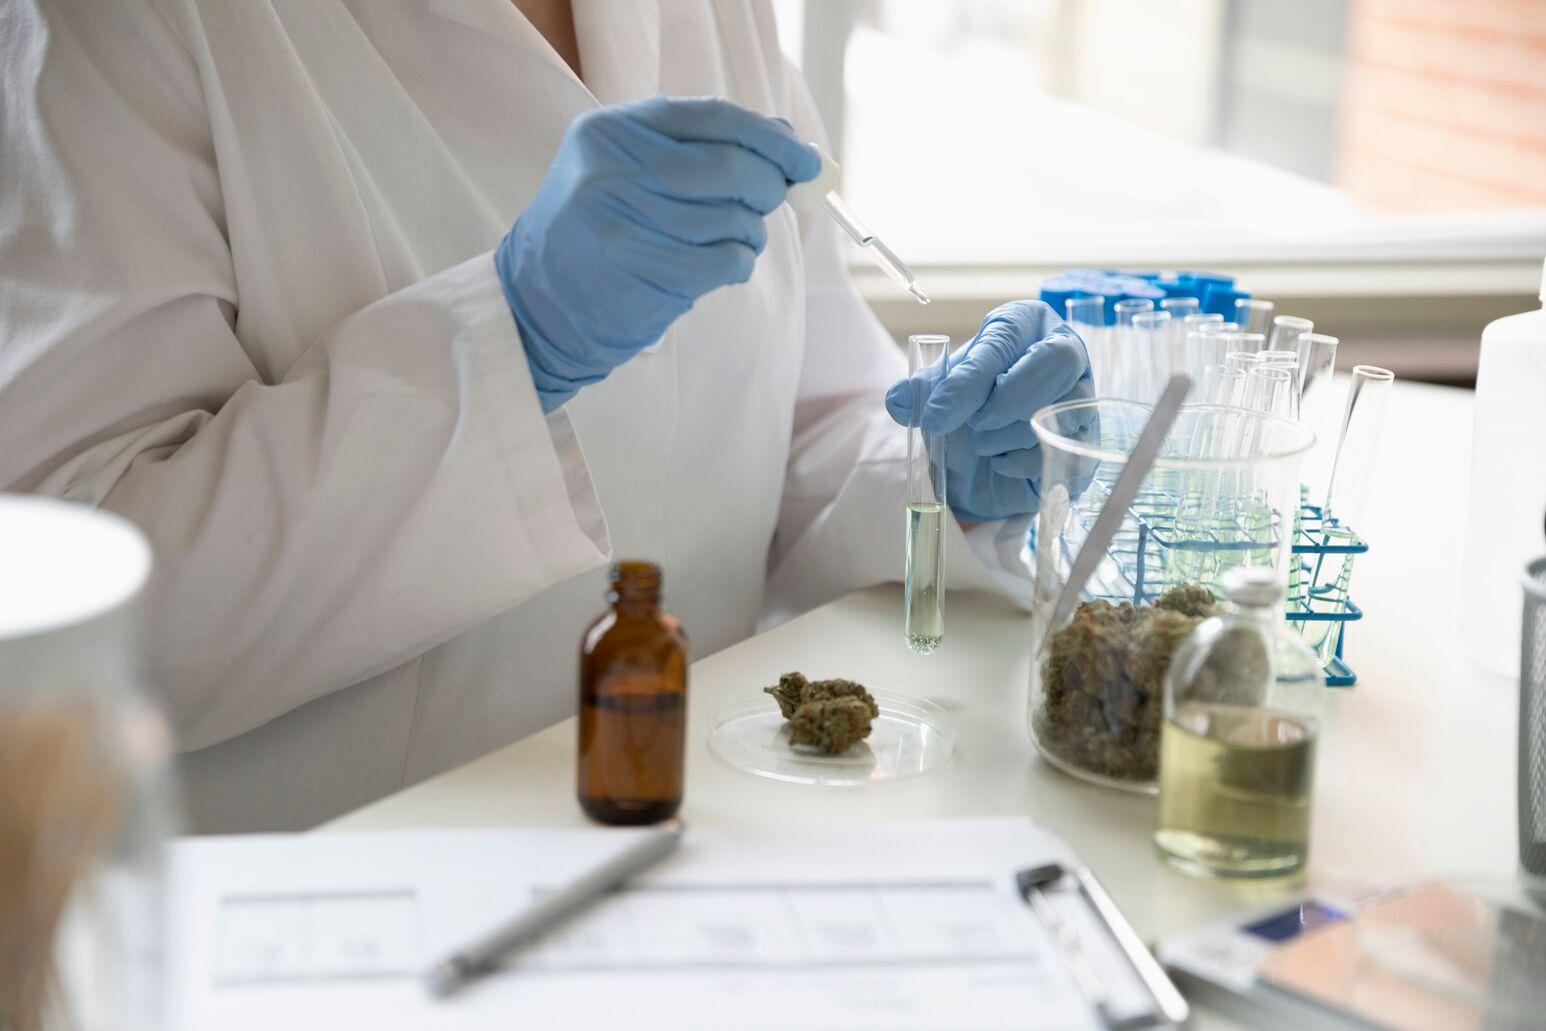 Cannabis being tested in a lab